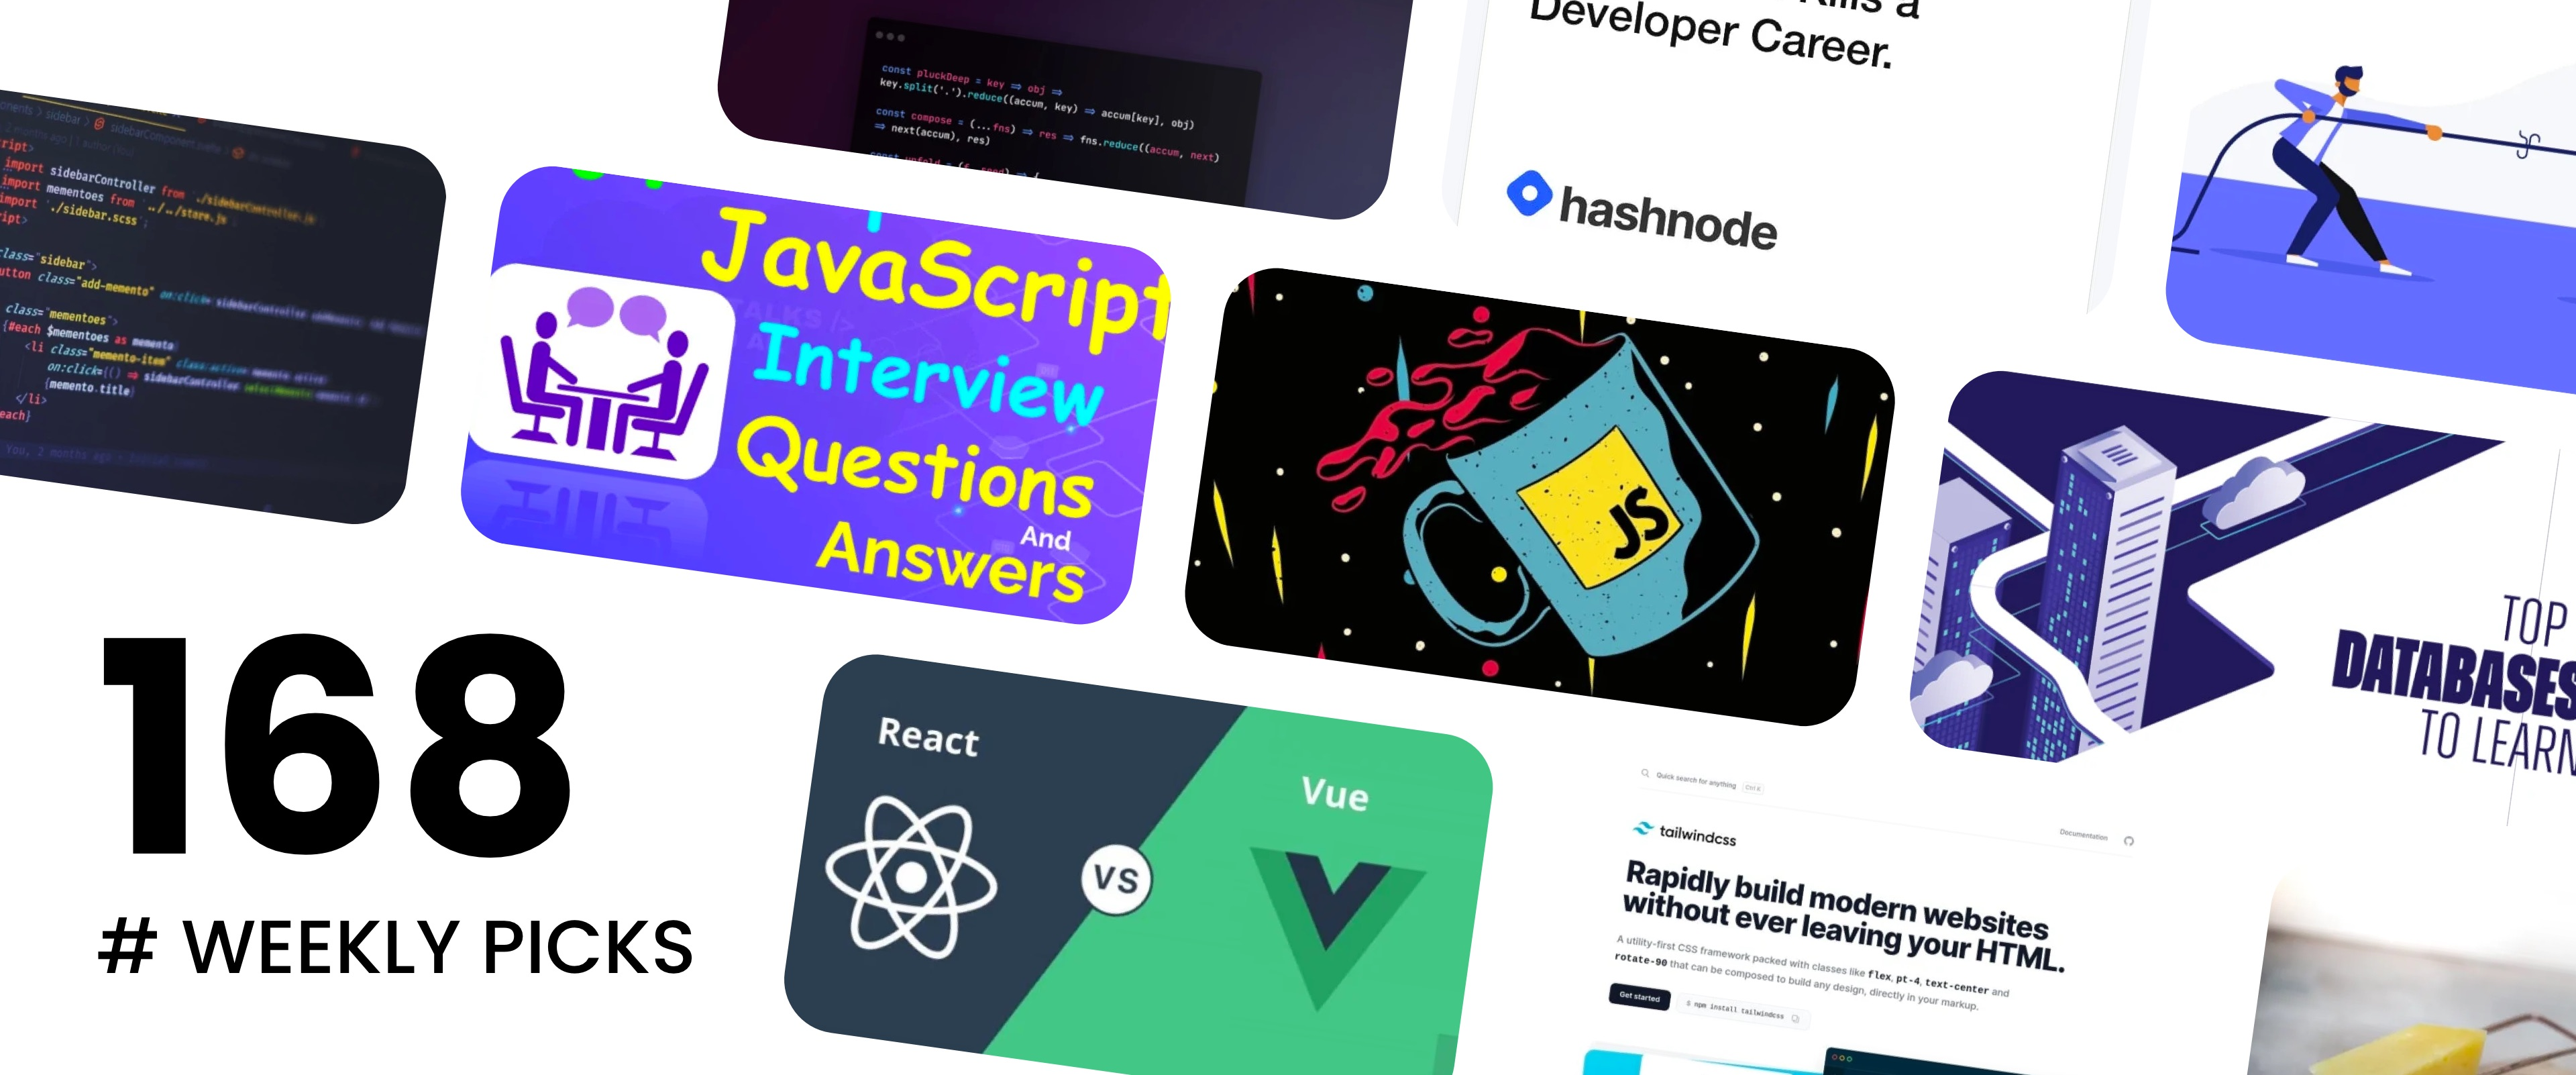 Habits That Kill Your Career, Vue.js vs React, Technical Interview Questions - Picks #168